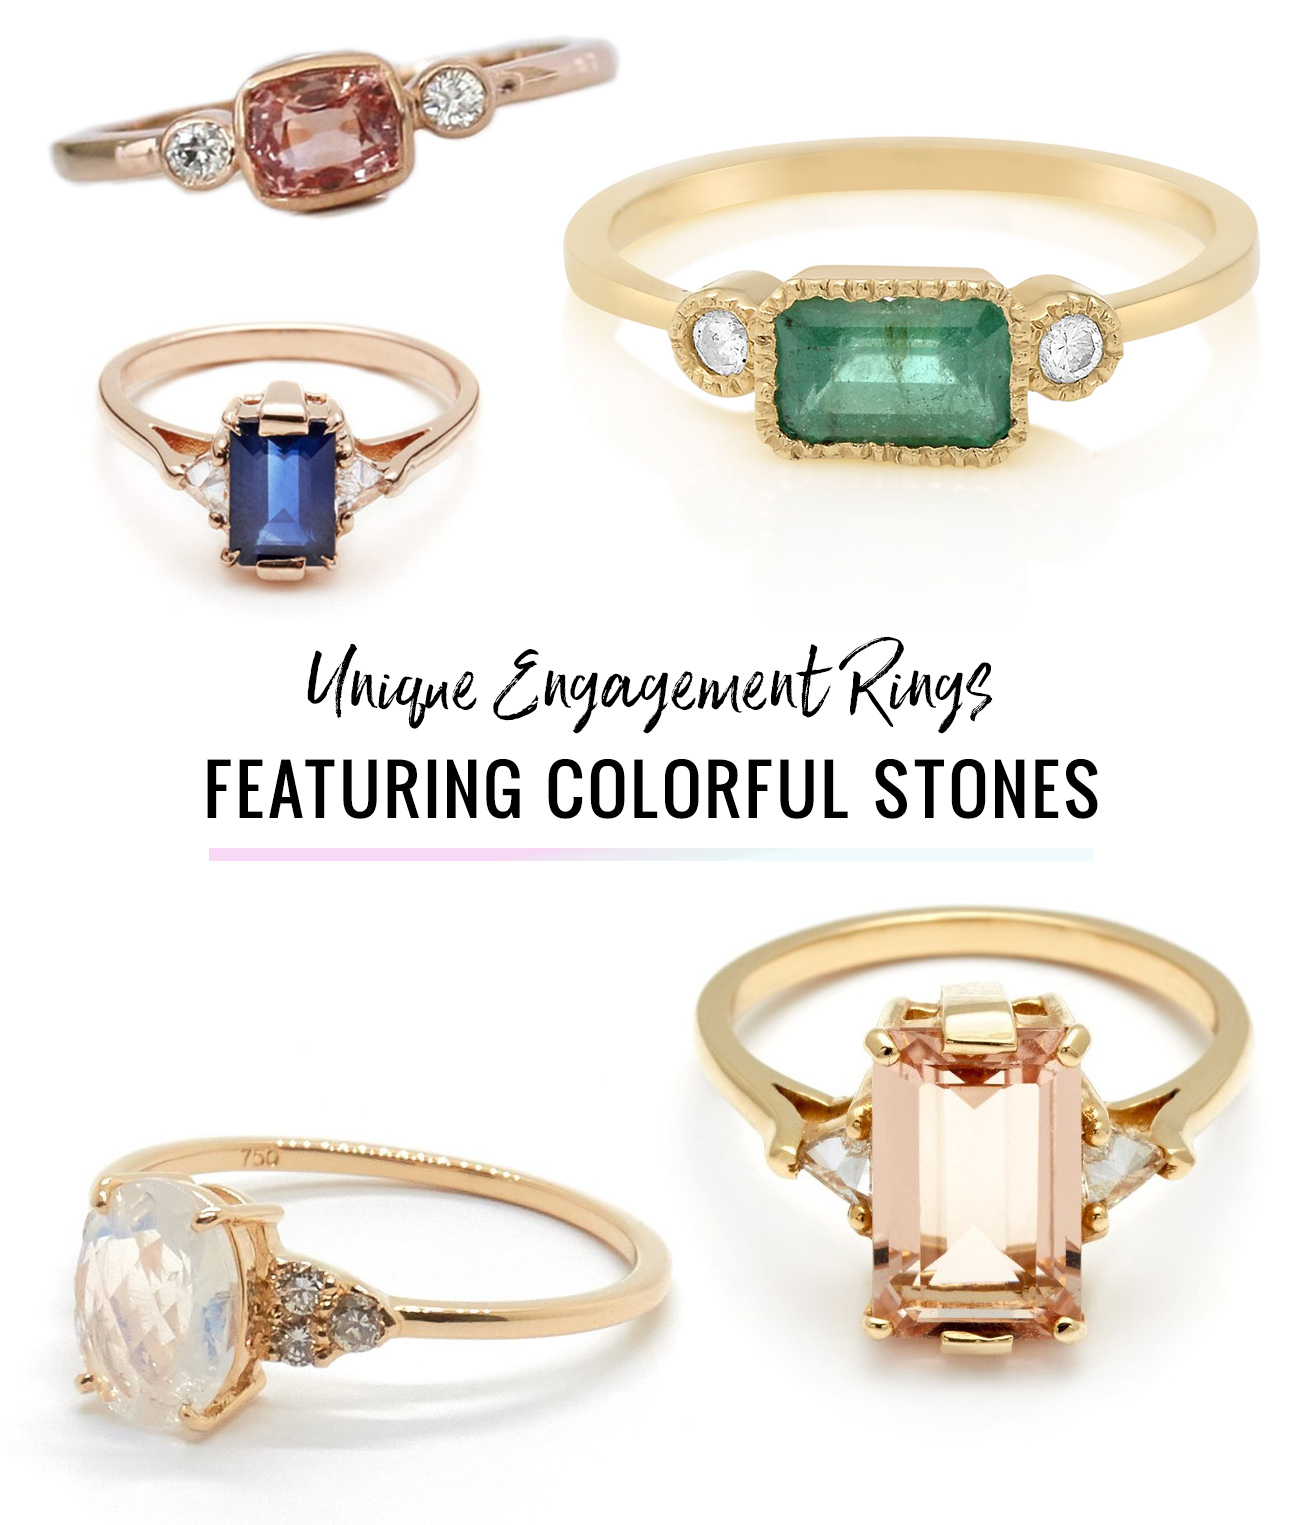 Unique Engagement Rings with Colorful Stones